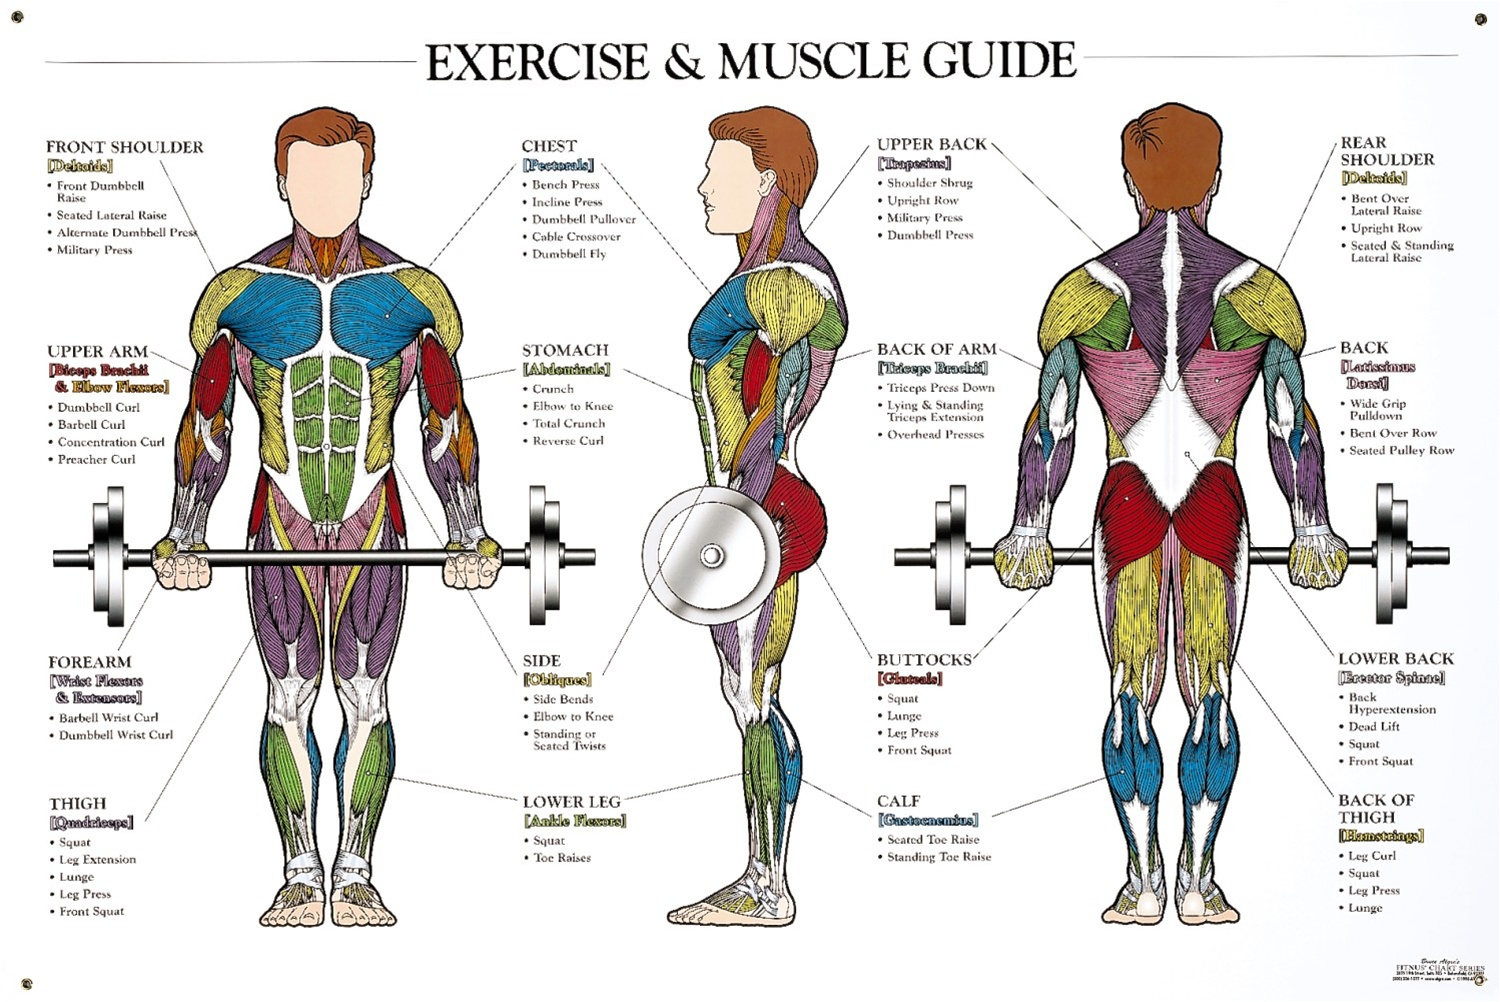 Muscle Anatomy Workout Image